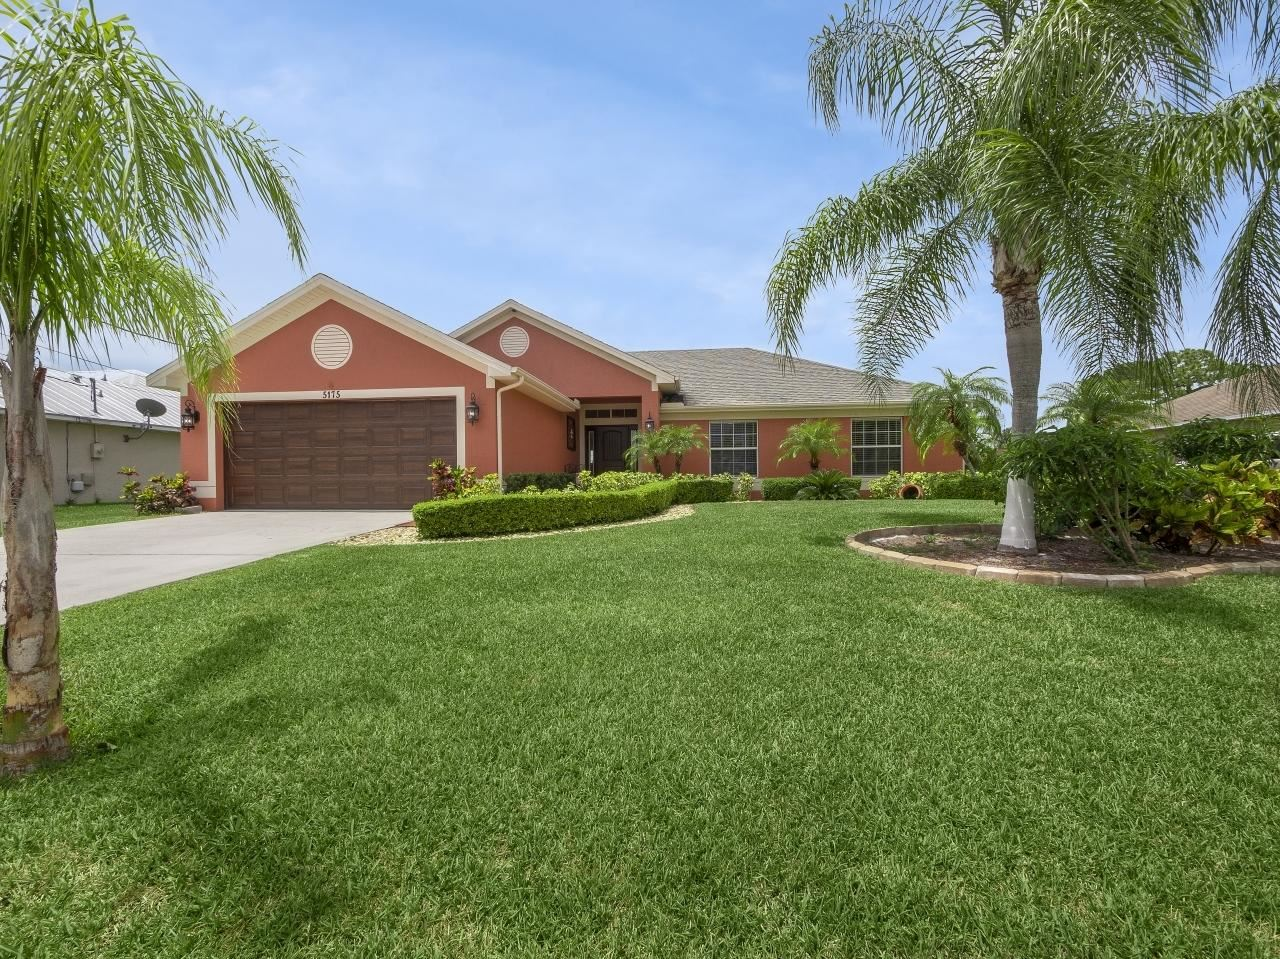 5175 NW Aljo Circle, Port Saint Lucie, FL 34986 - MLS#: RX-10715869